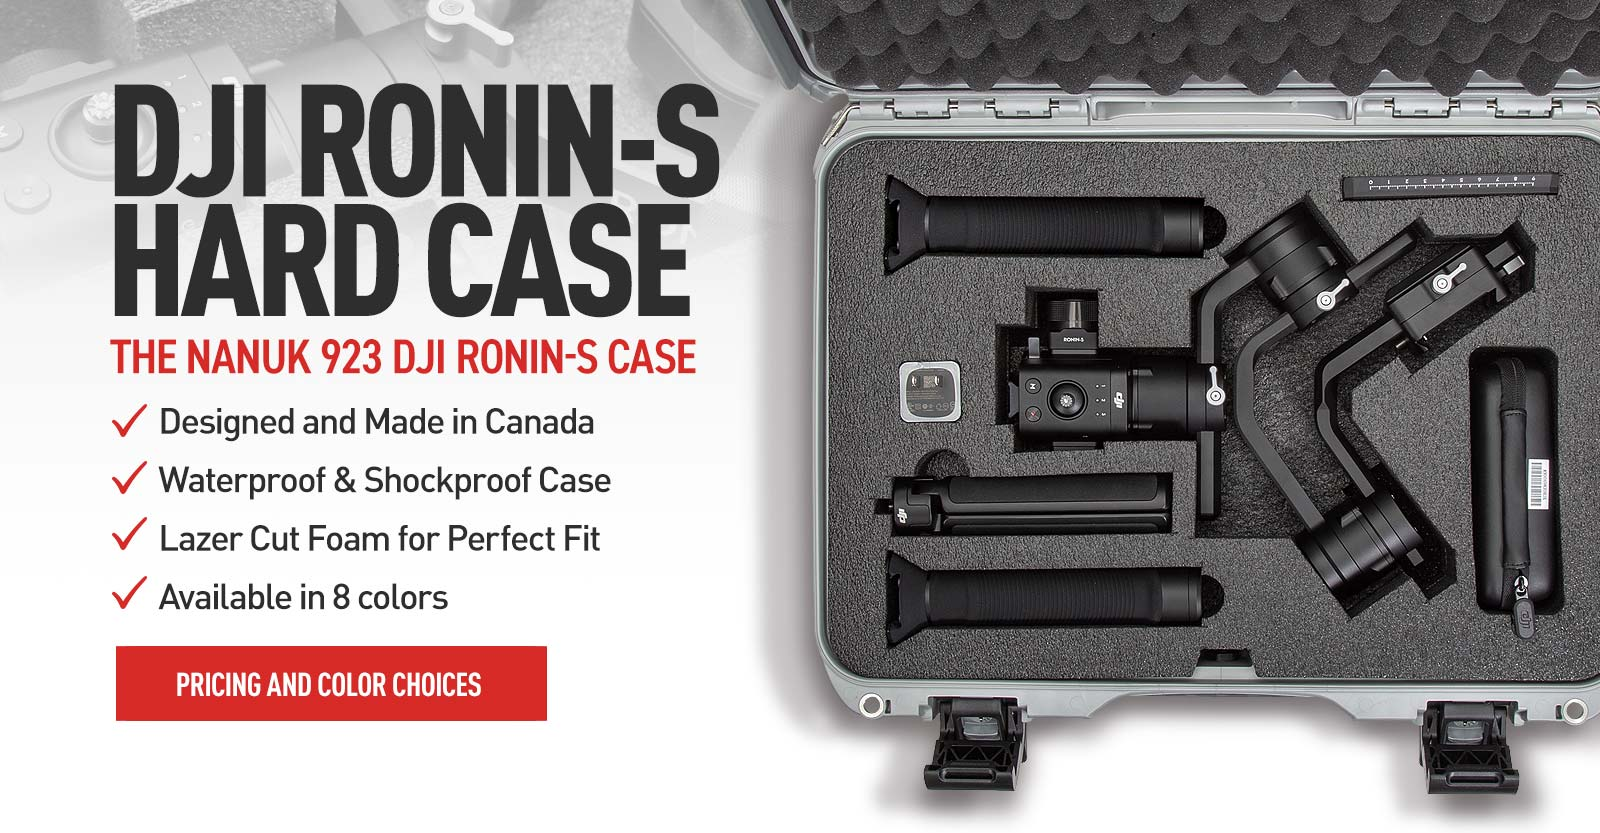 Nanuk 923 Hard Case for the DJI Ronin-S